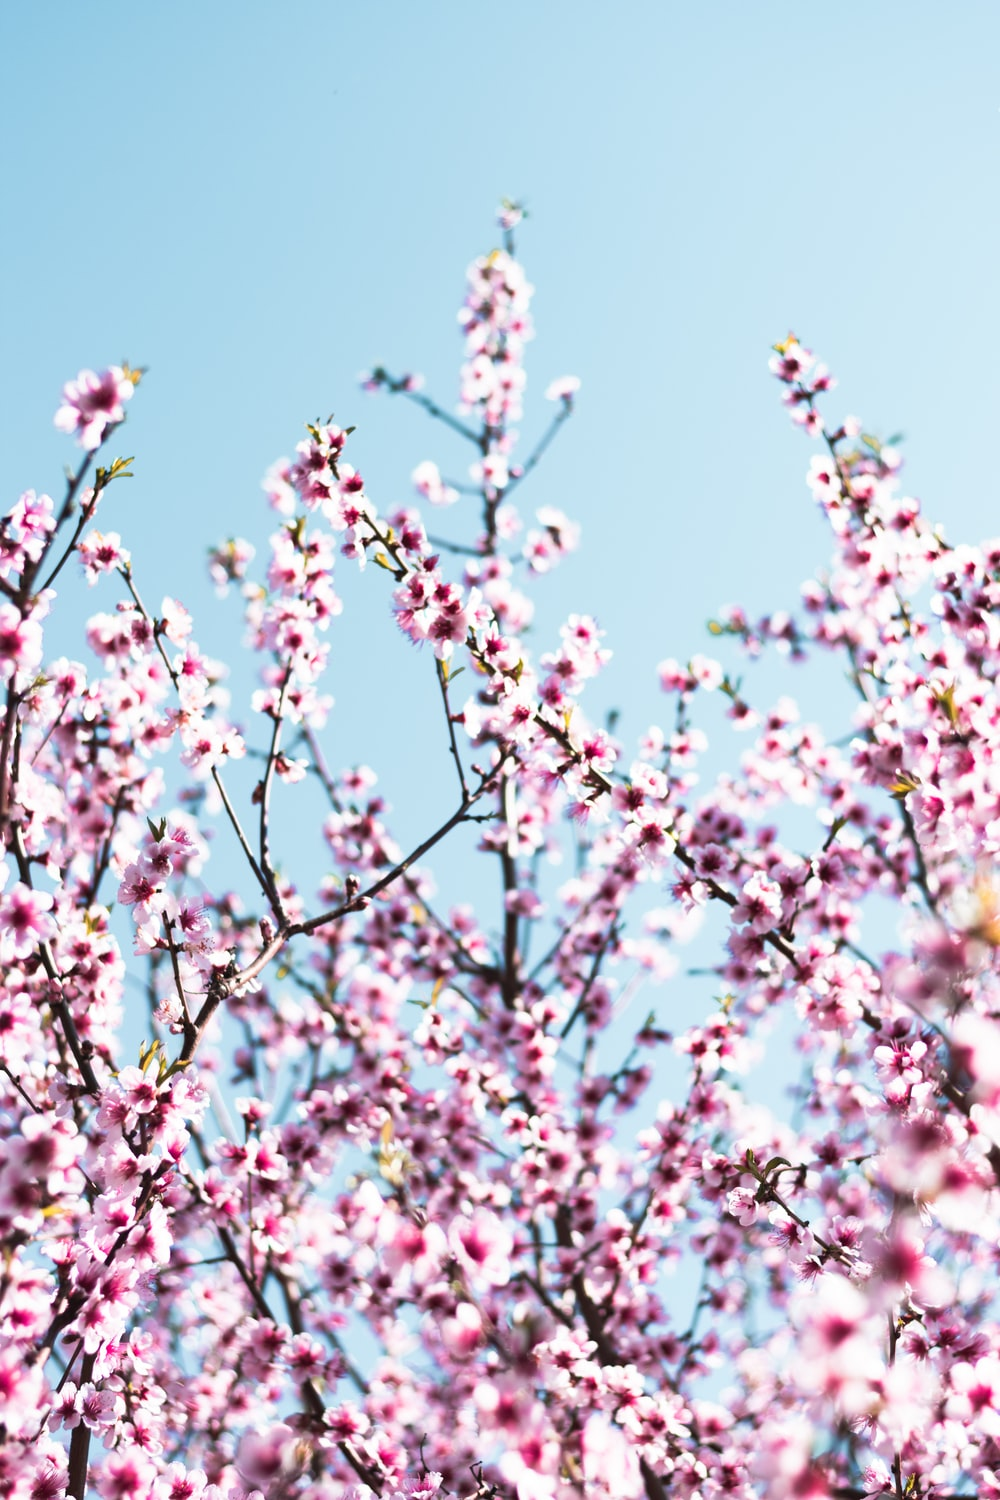 white and pink cherry blossom flowers